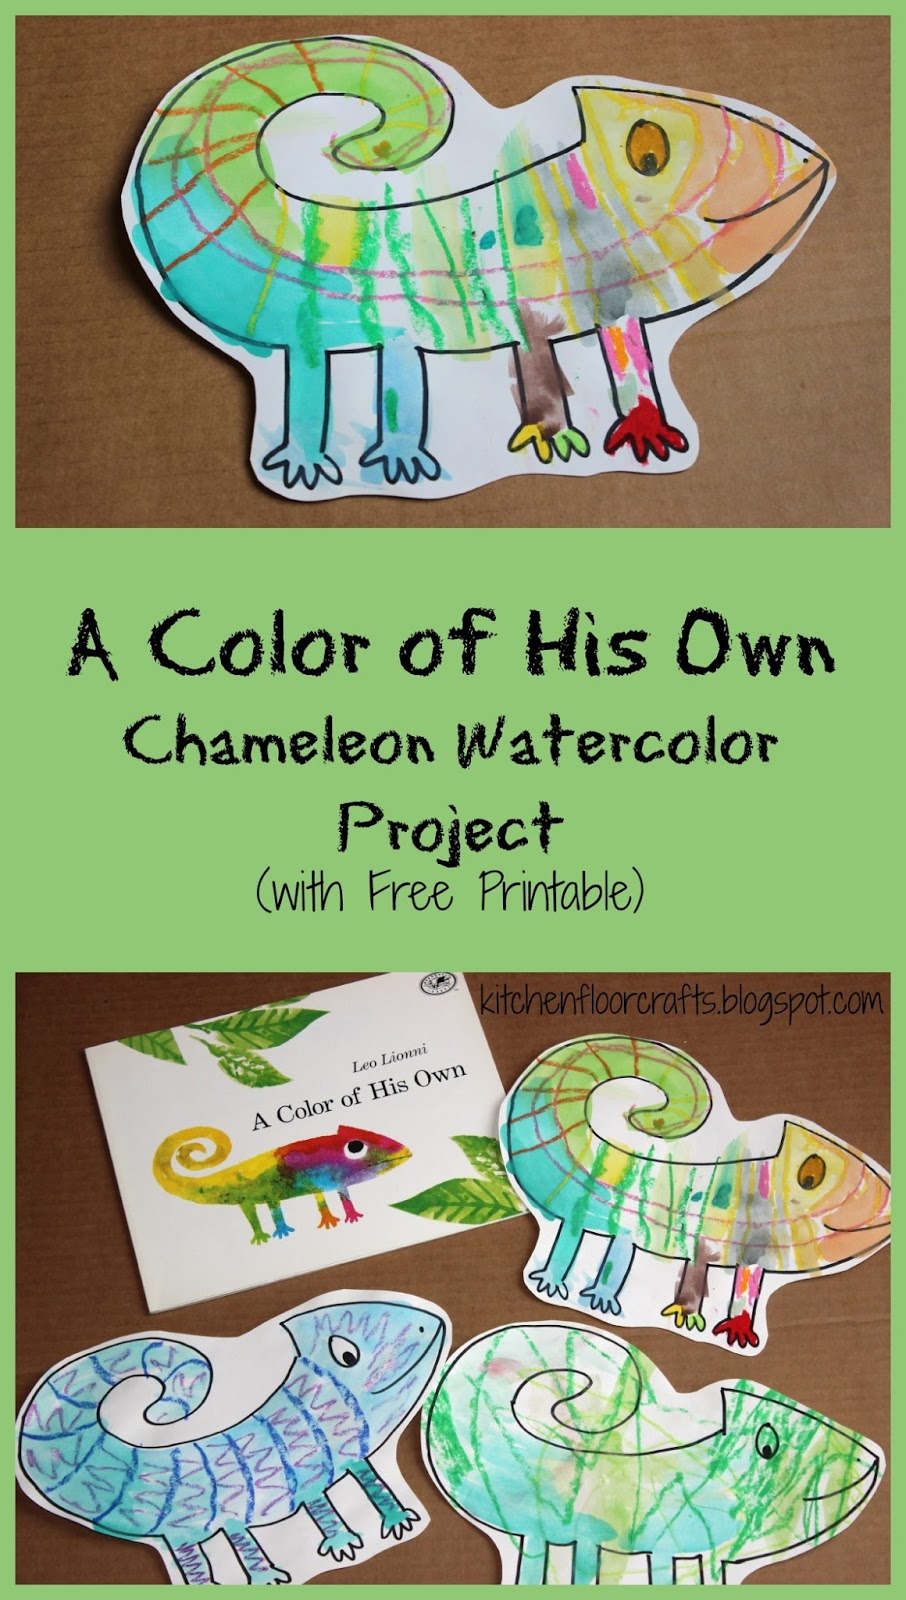 Kitchen Floor Crafts: A Color of His Own: Chameleon Watercolor Project